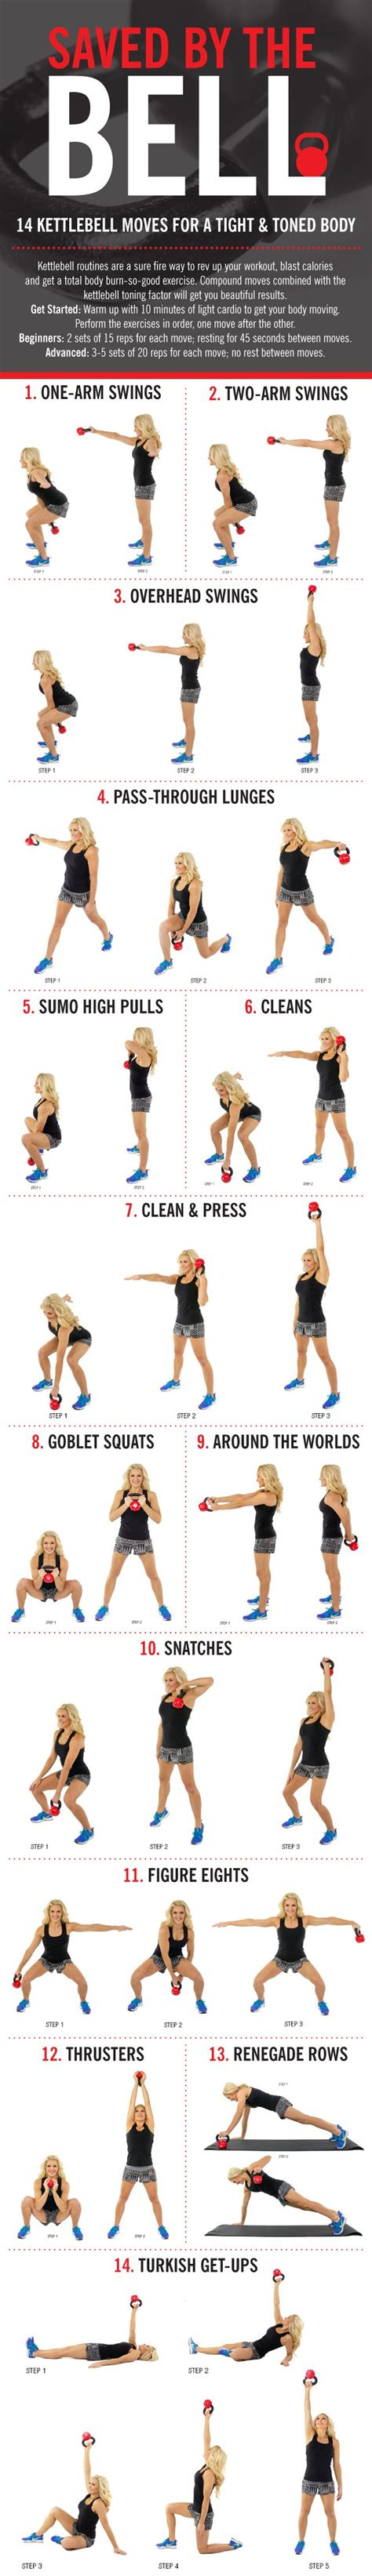 kettlebell exercises body toned simple infographic kettlebells tight health